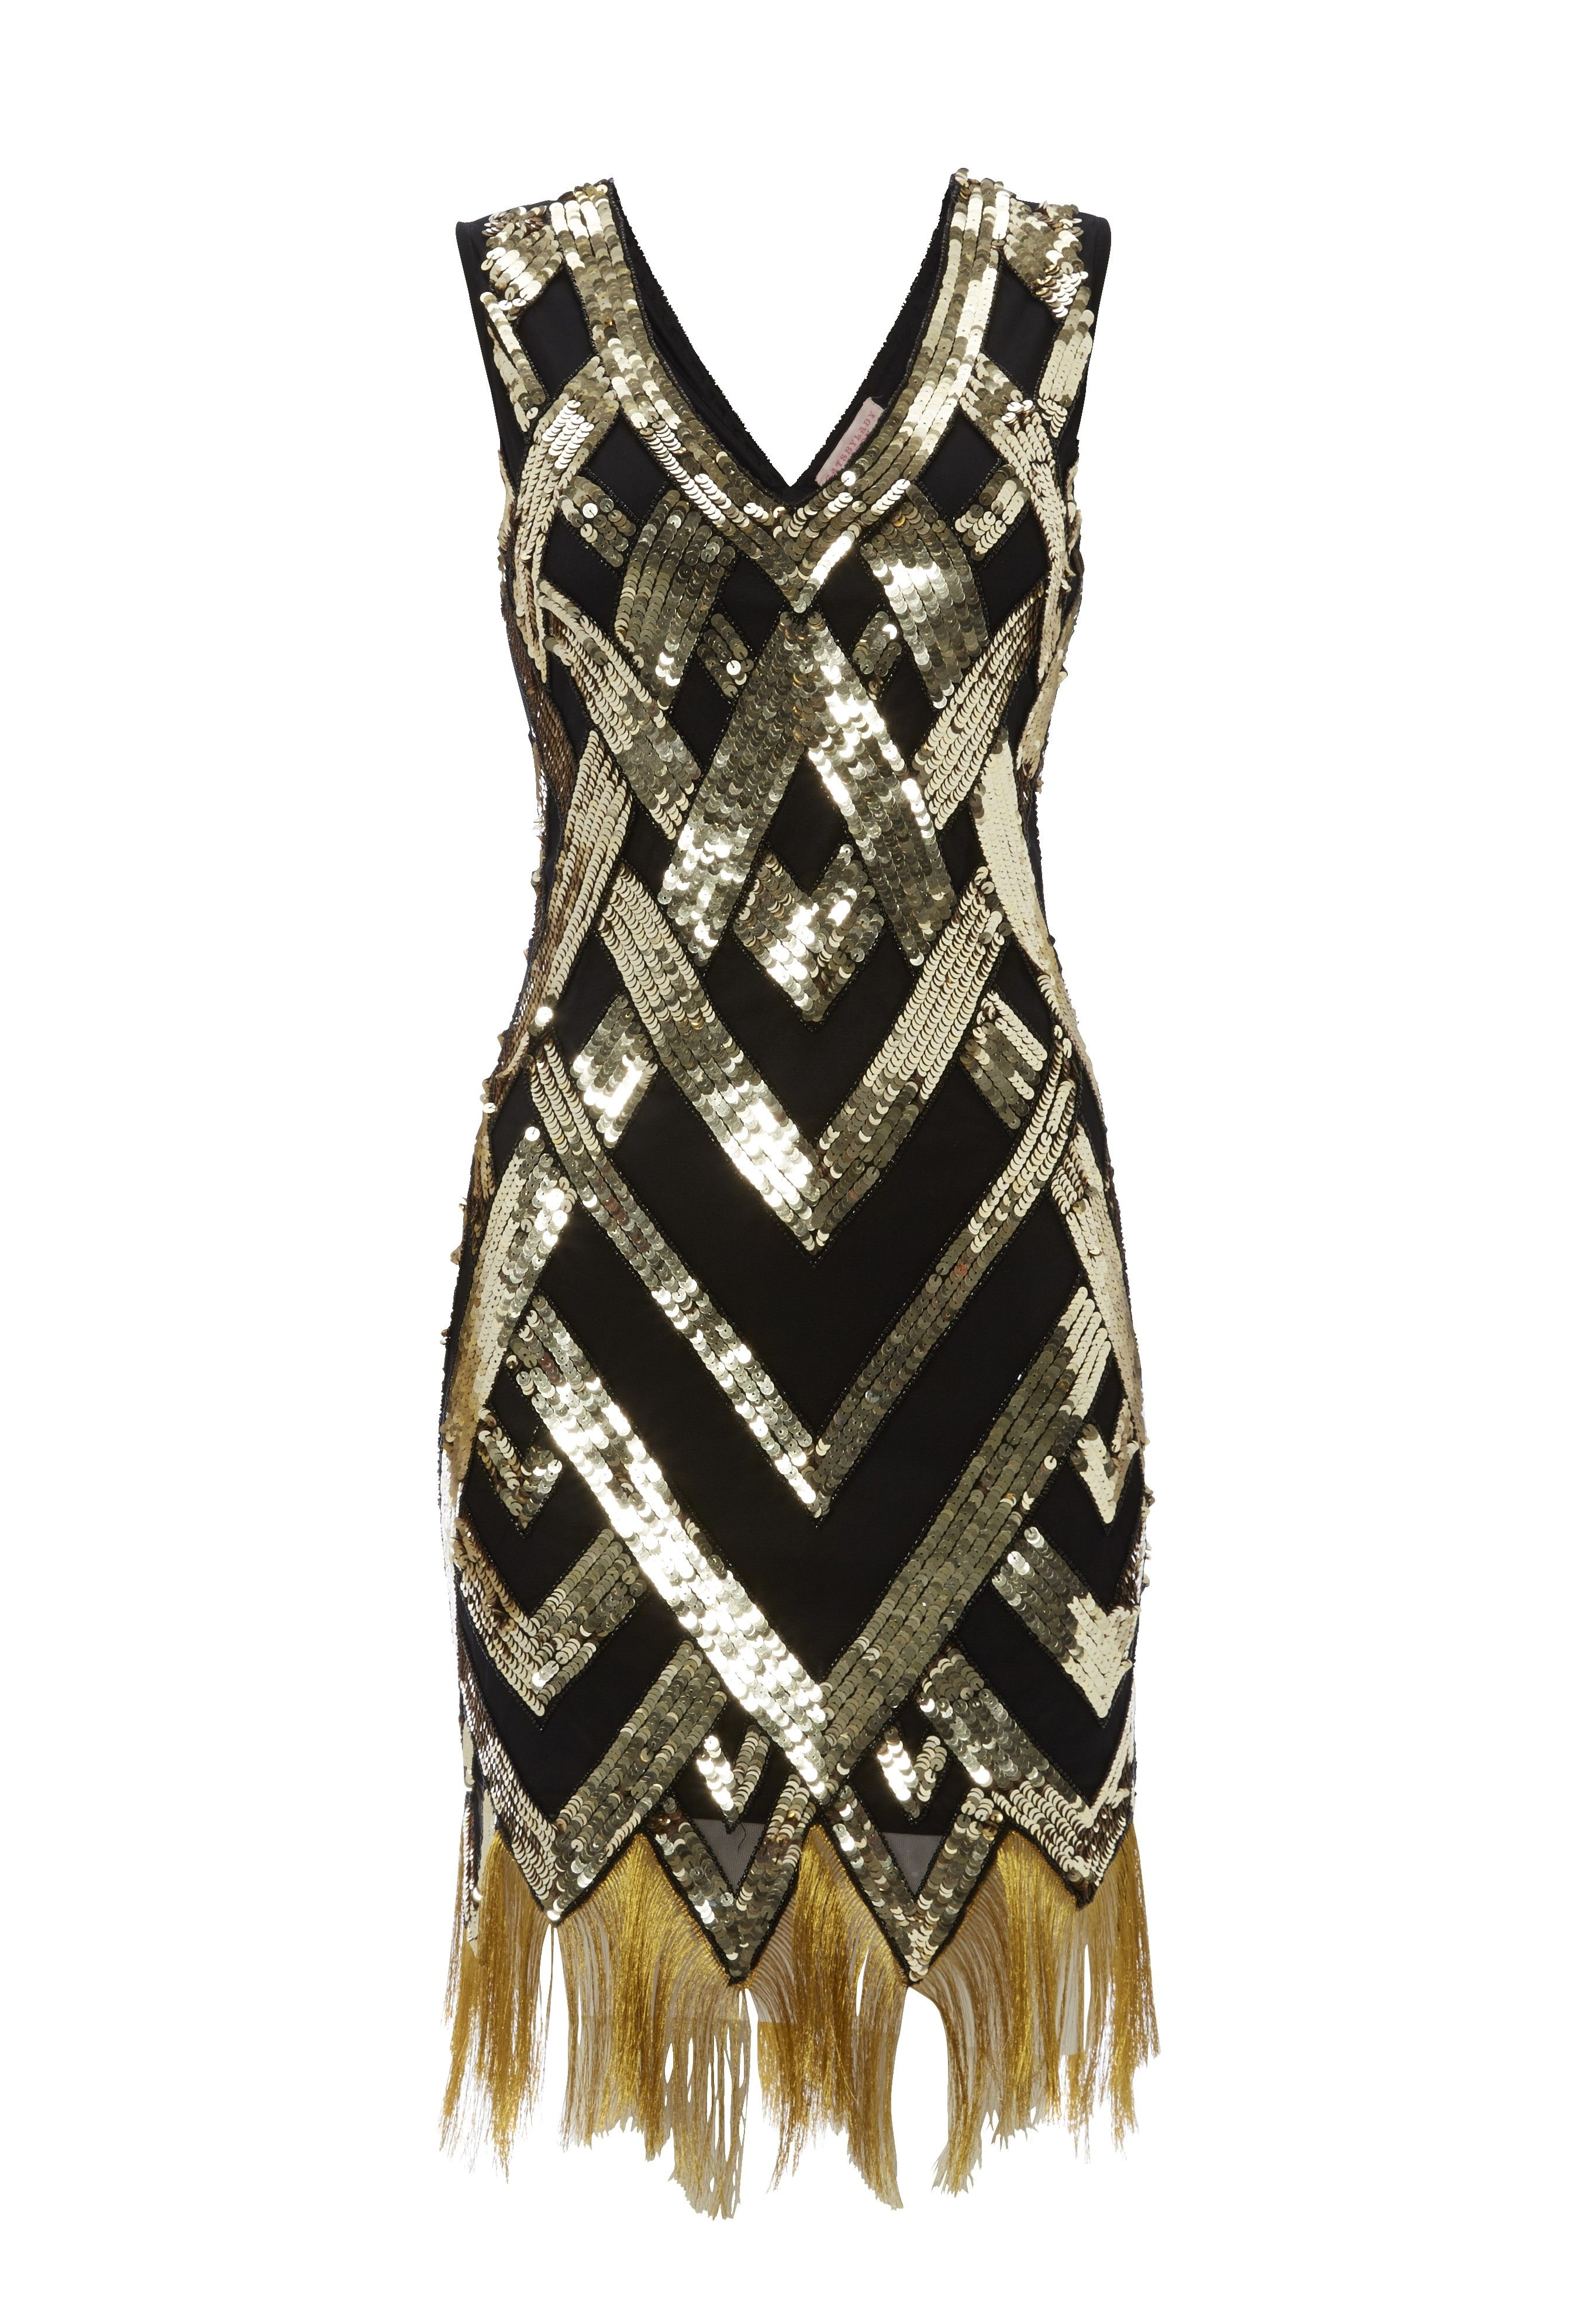 Black Gold Vintage Inspired 1920s Vibe Flapper Great Gatsby Beaded